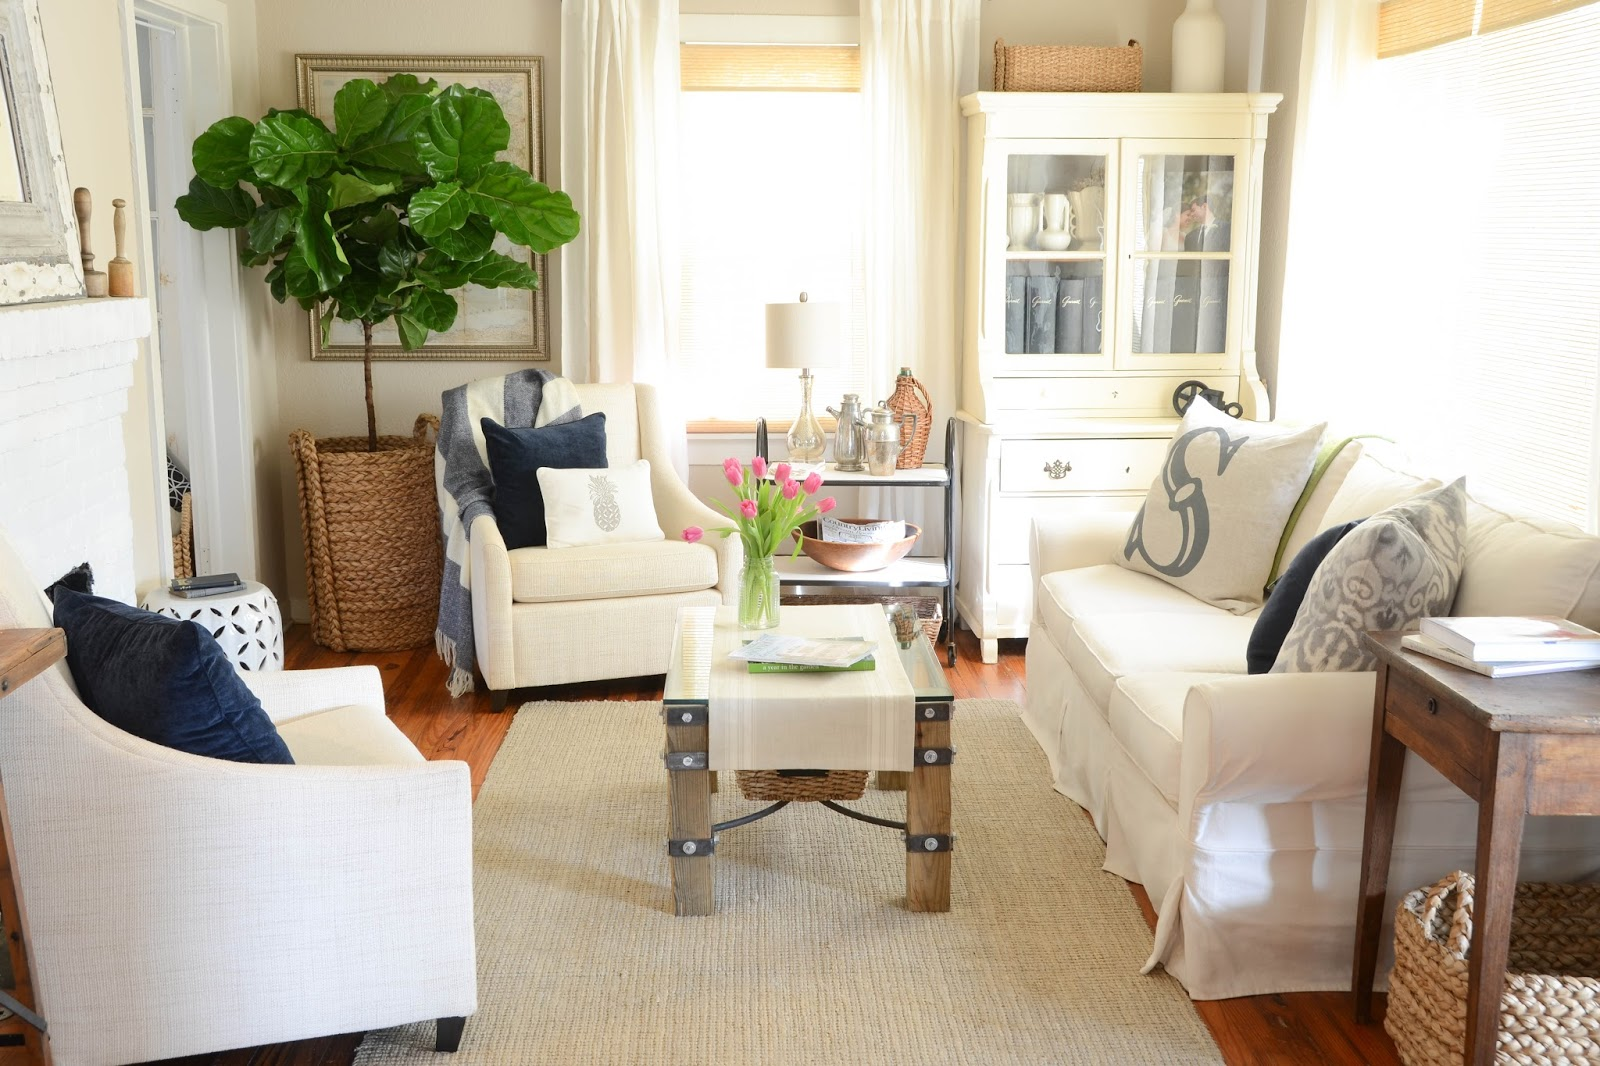 Big Plants For Living Room Iron And Twine Fiddle Leaf Fig Tree